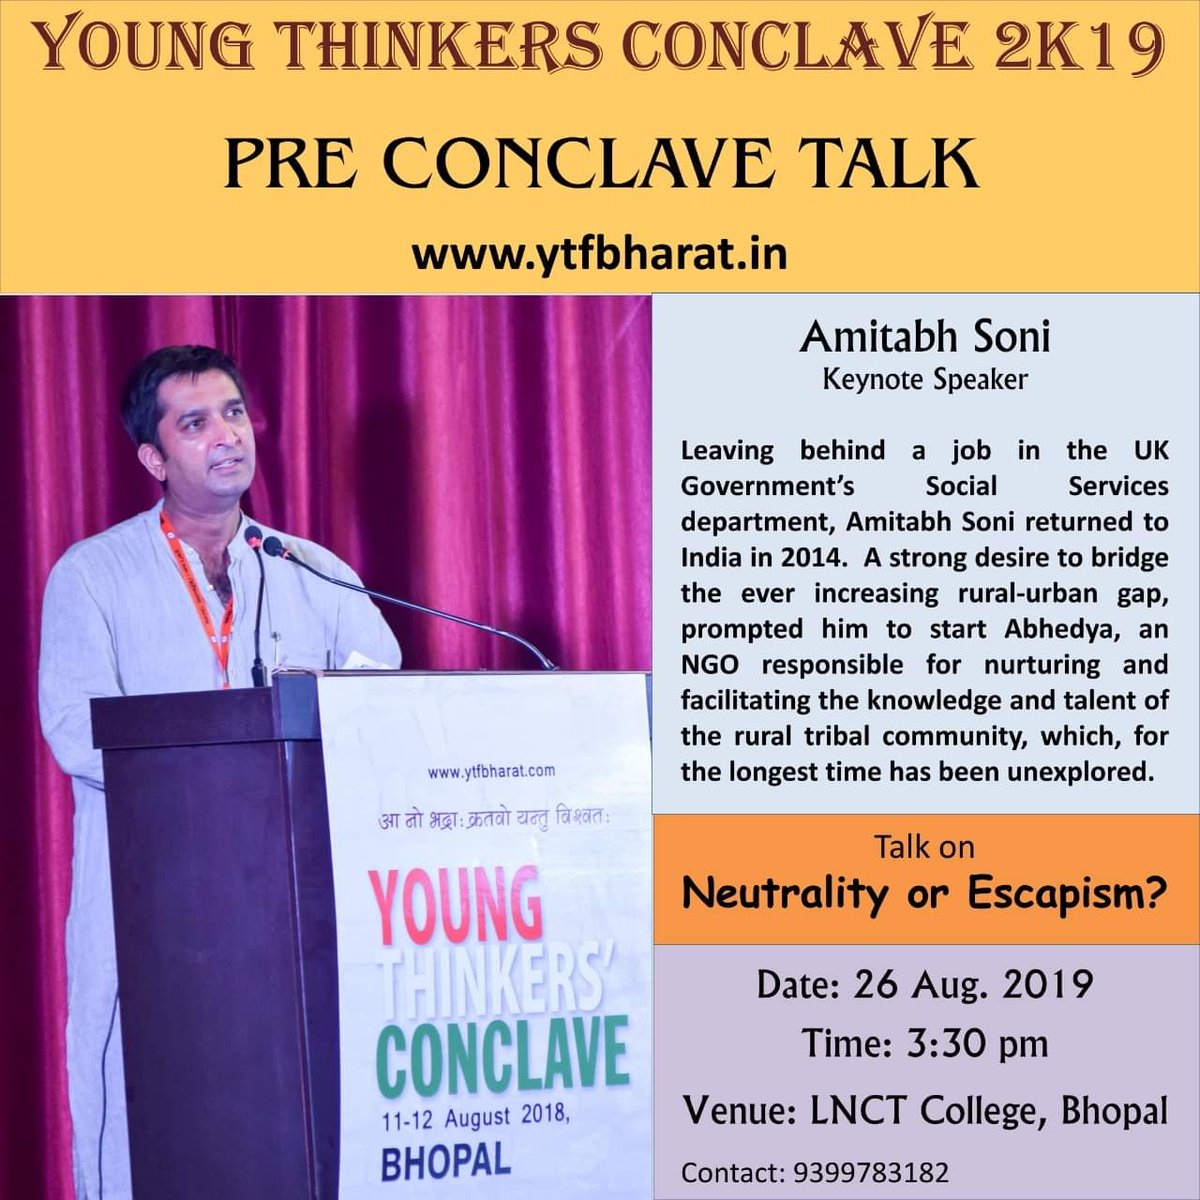 RT @ytfbharat: YTC'19 Pre Conclave Talk by @iAmitabhSoni at LNCT College, Bhopal. @AbhedyaNGO https://t.co/FHx22LsdDj